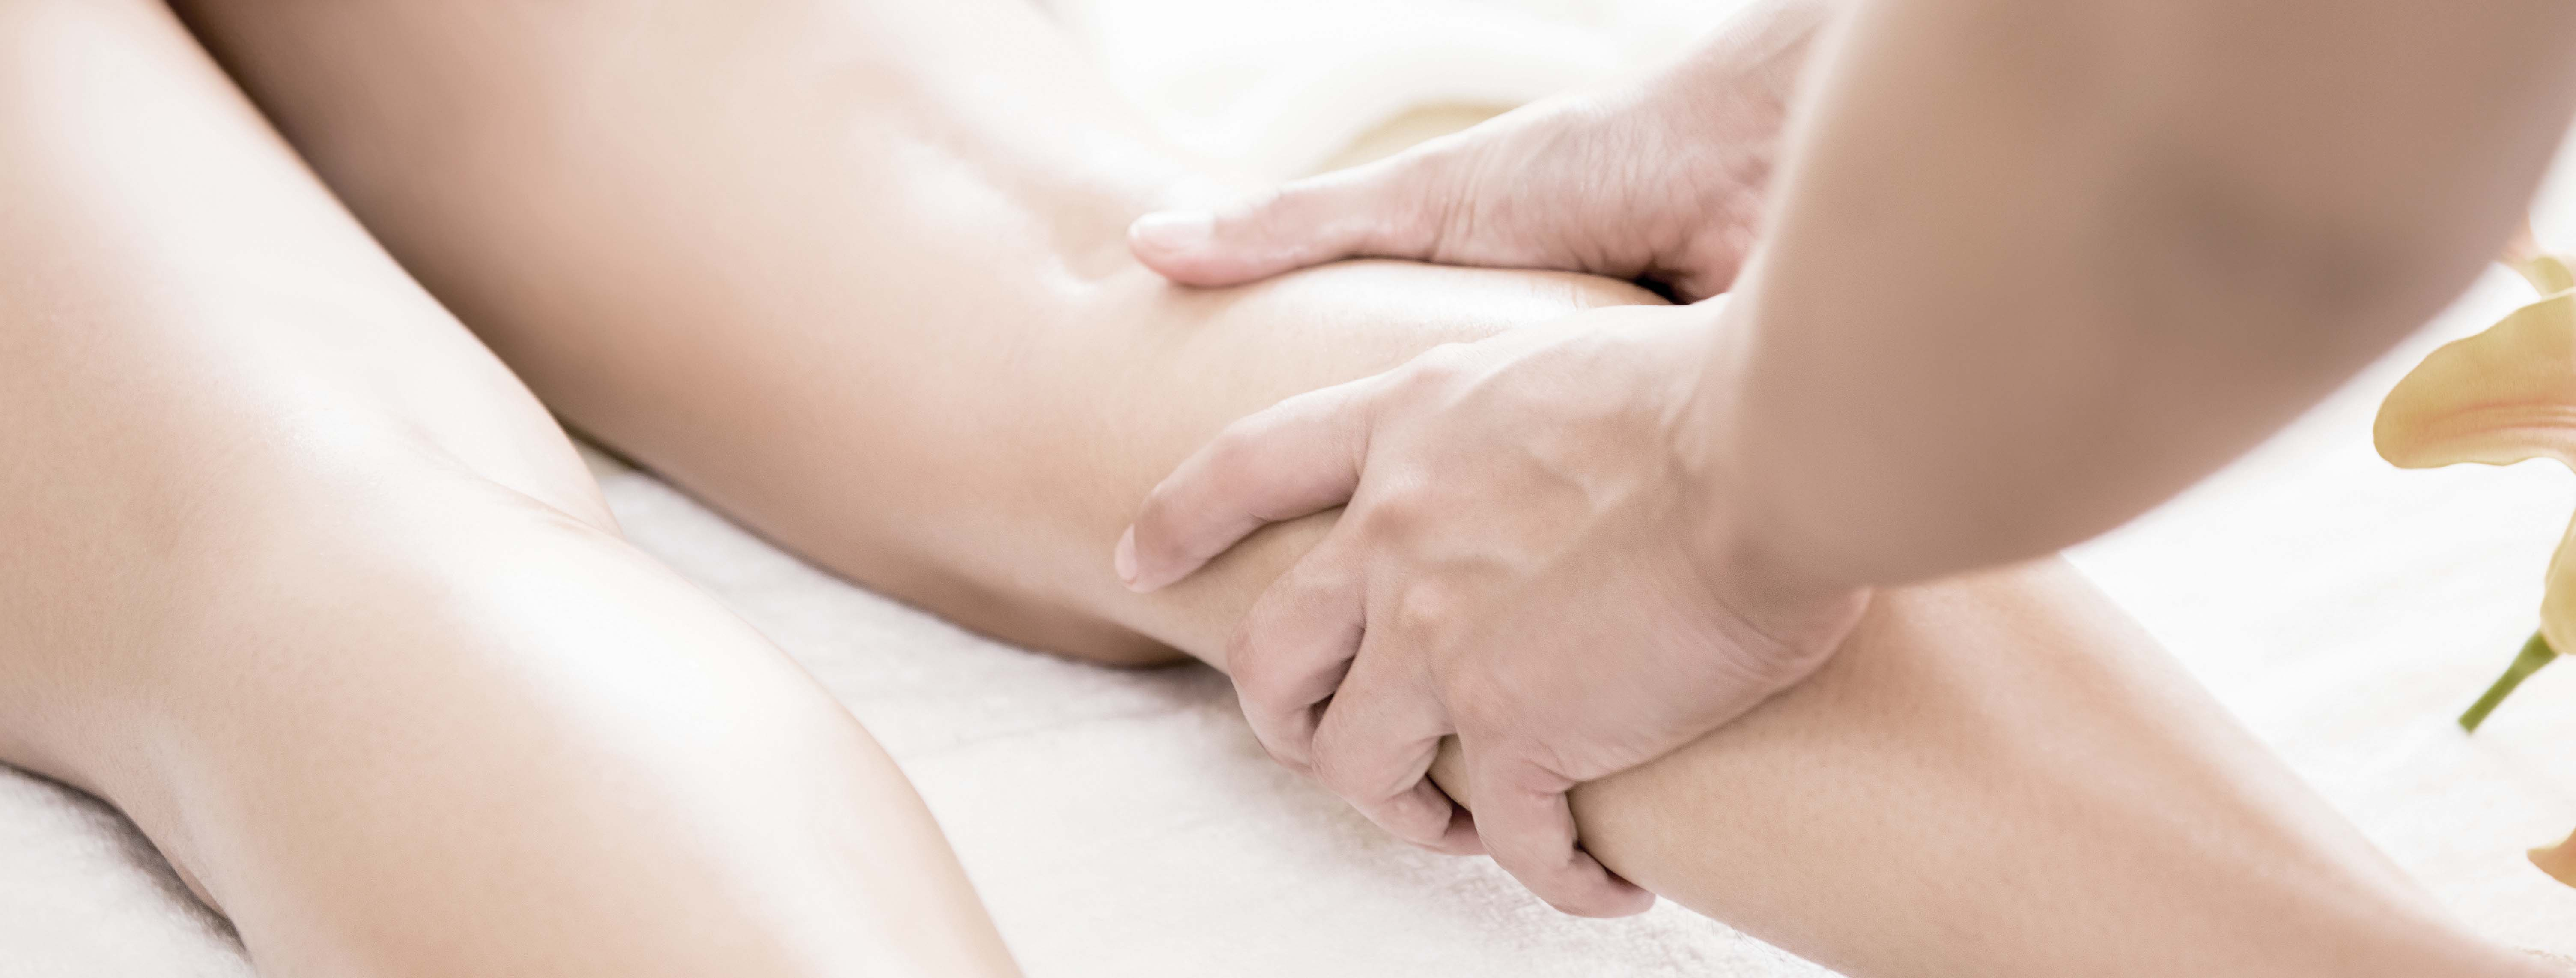 Professional therapist giving relaxing reflexology Thai oil leg massage treatment to a woman in spa - panoramic banner